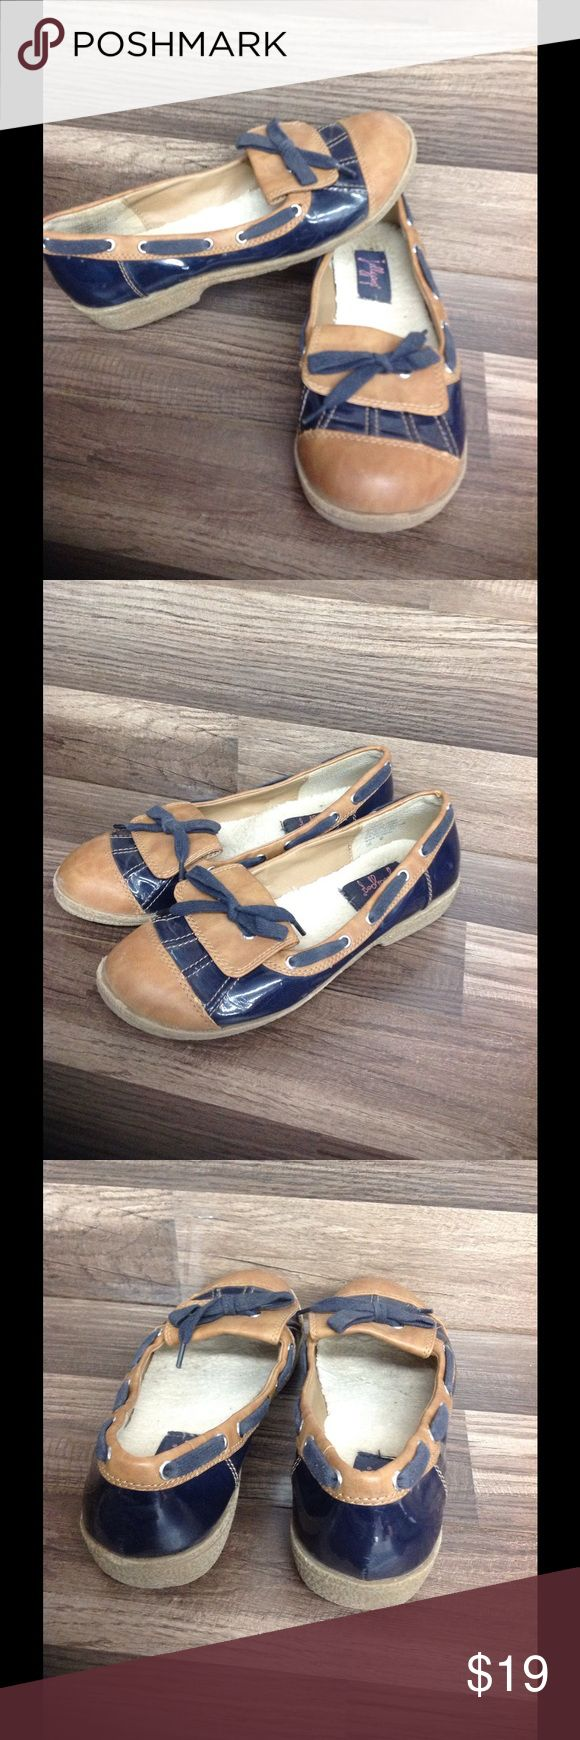 Womens boat shoes sir 9 slip ons khaki navy patent In great shape minor wear brown leather with navy shiny patent. Ultra nautical and chic size 9 jellypop Shoes Flats & Loafers